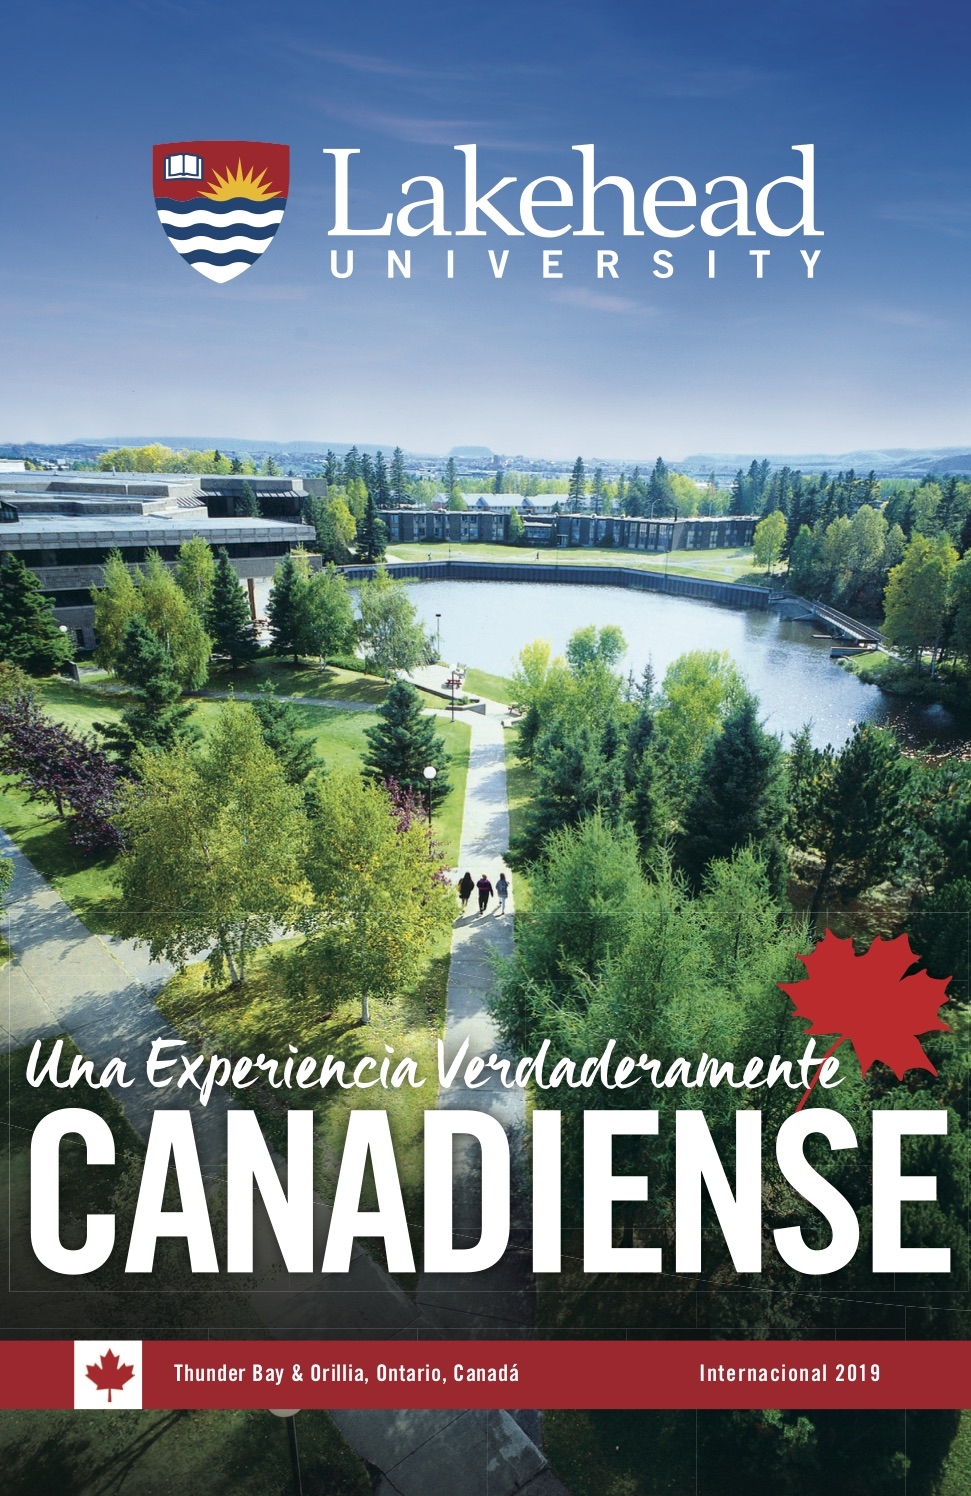 The cover of the 2017 Lakehead International Brochure in Spanish.